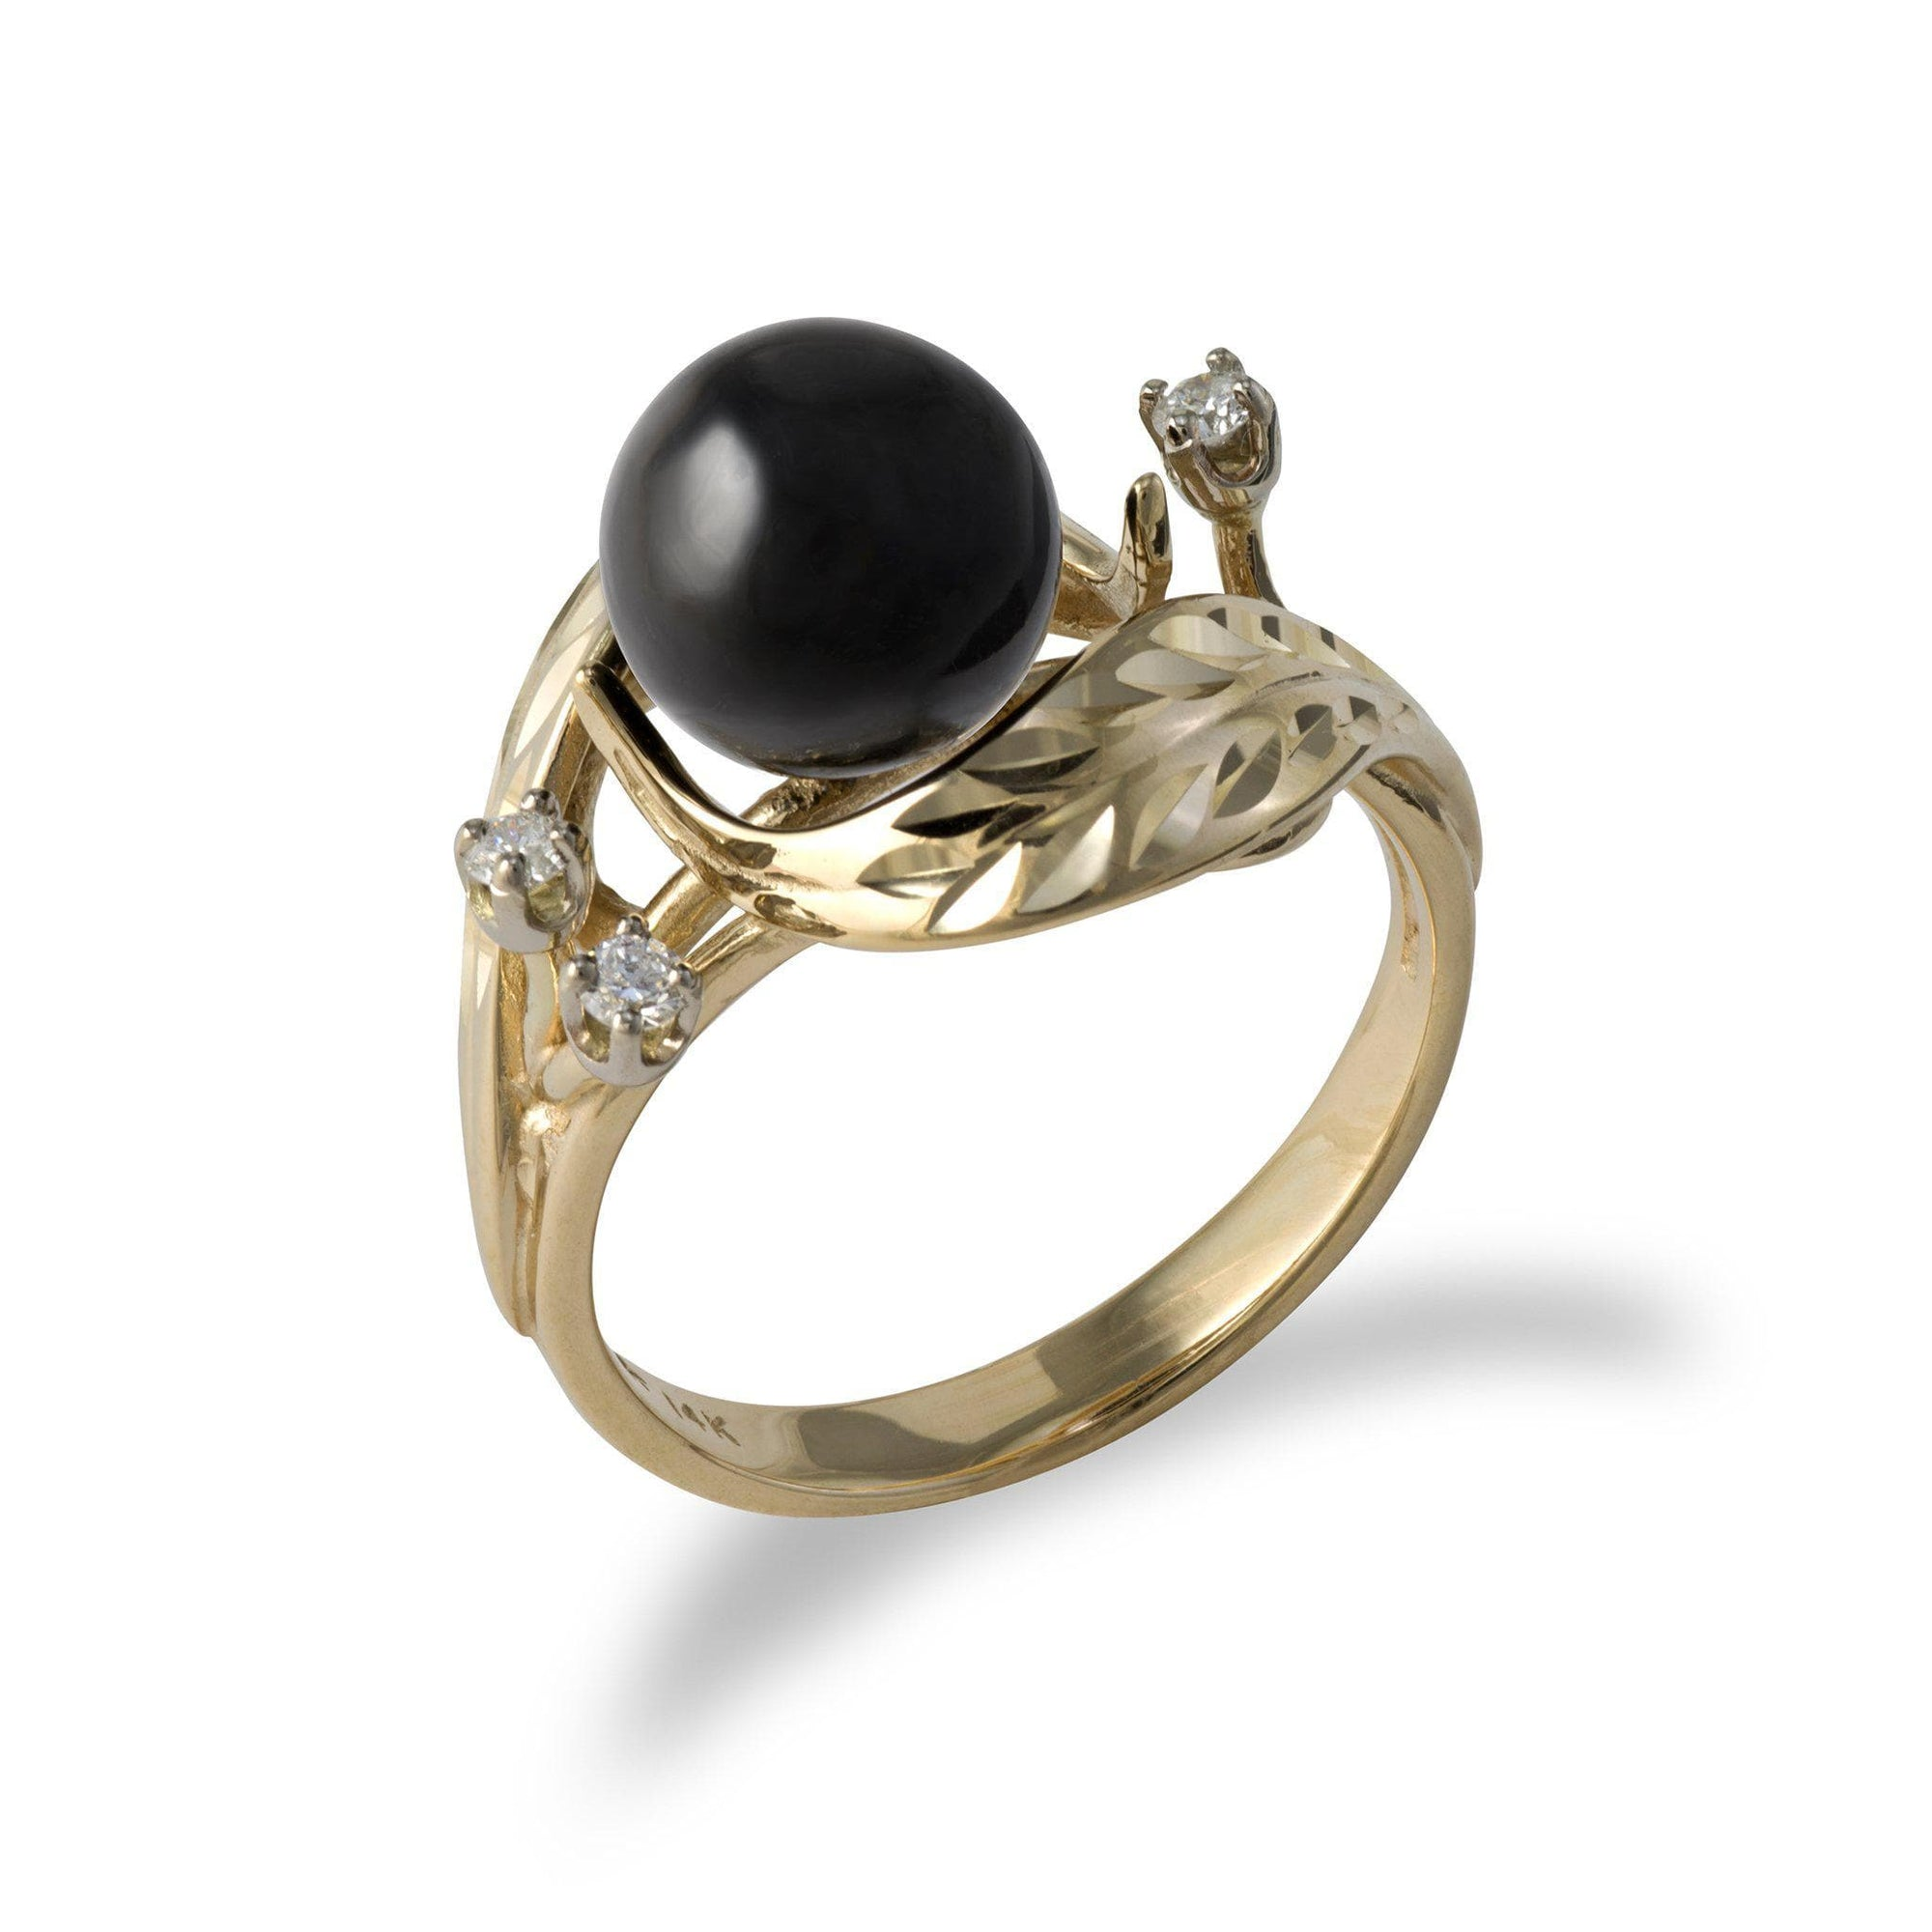 Maile Black Coral Ring with Diamonds in 14K Yellow Gold-[SKU]